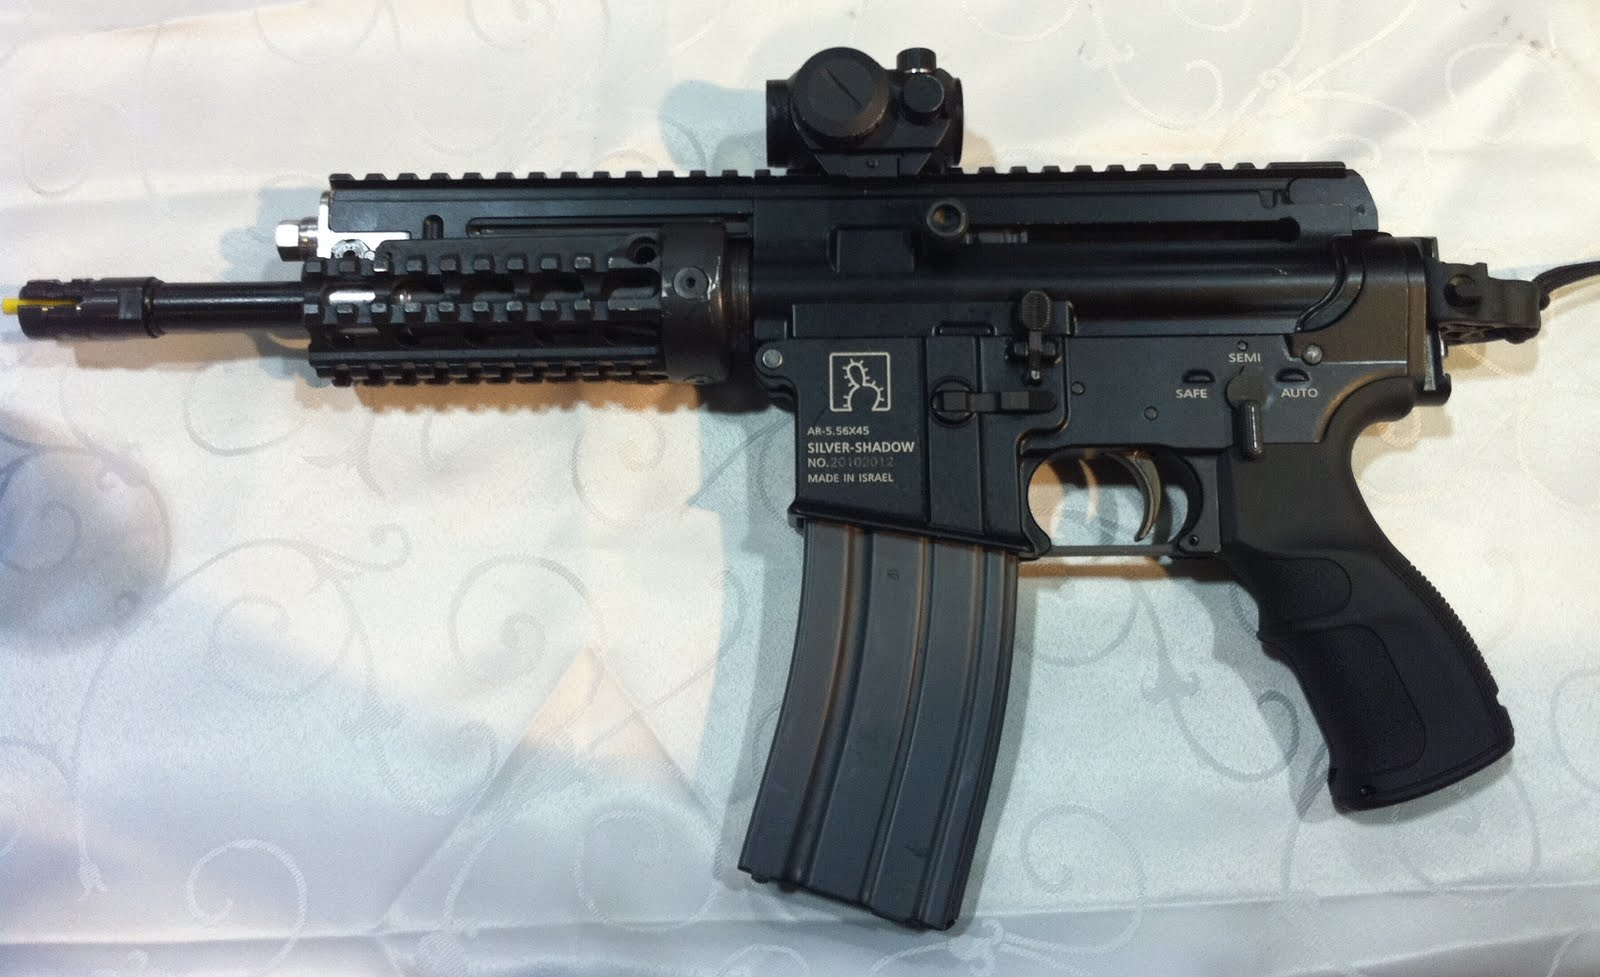 <!--:en-->Silver Shadow Gilboa APR (Assault Pistol Rifle) Select-Fire Tactical AR (AR-15) PDW/SBR/Pistol for Military Special Operations (SPECOPS) Applications<!--:-->